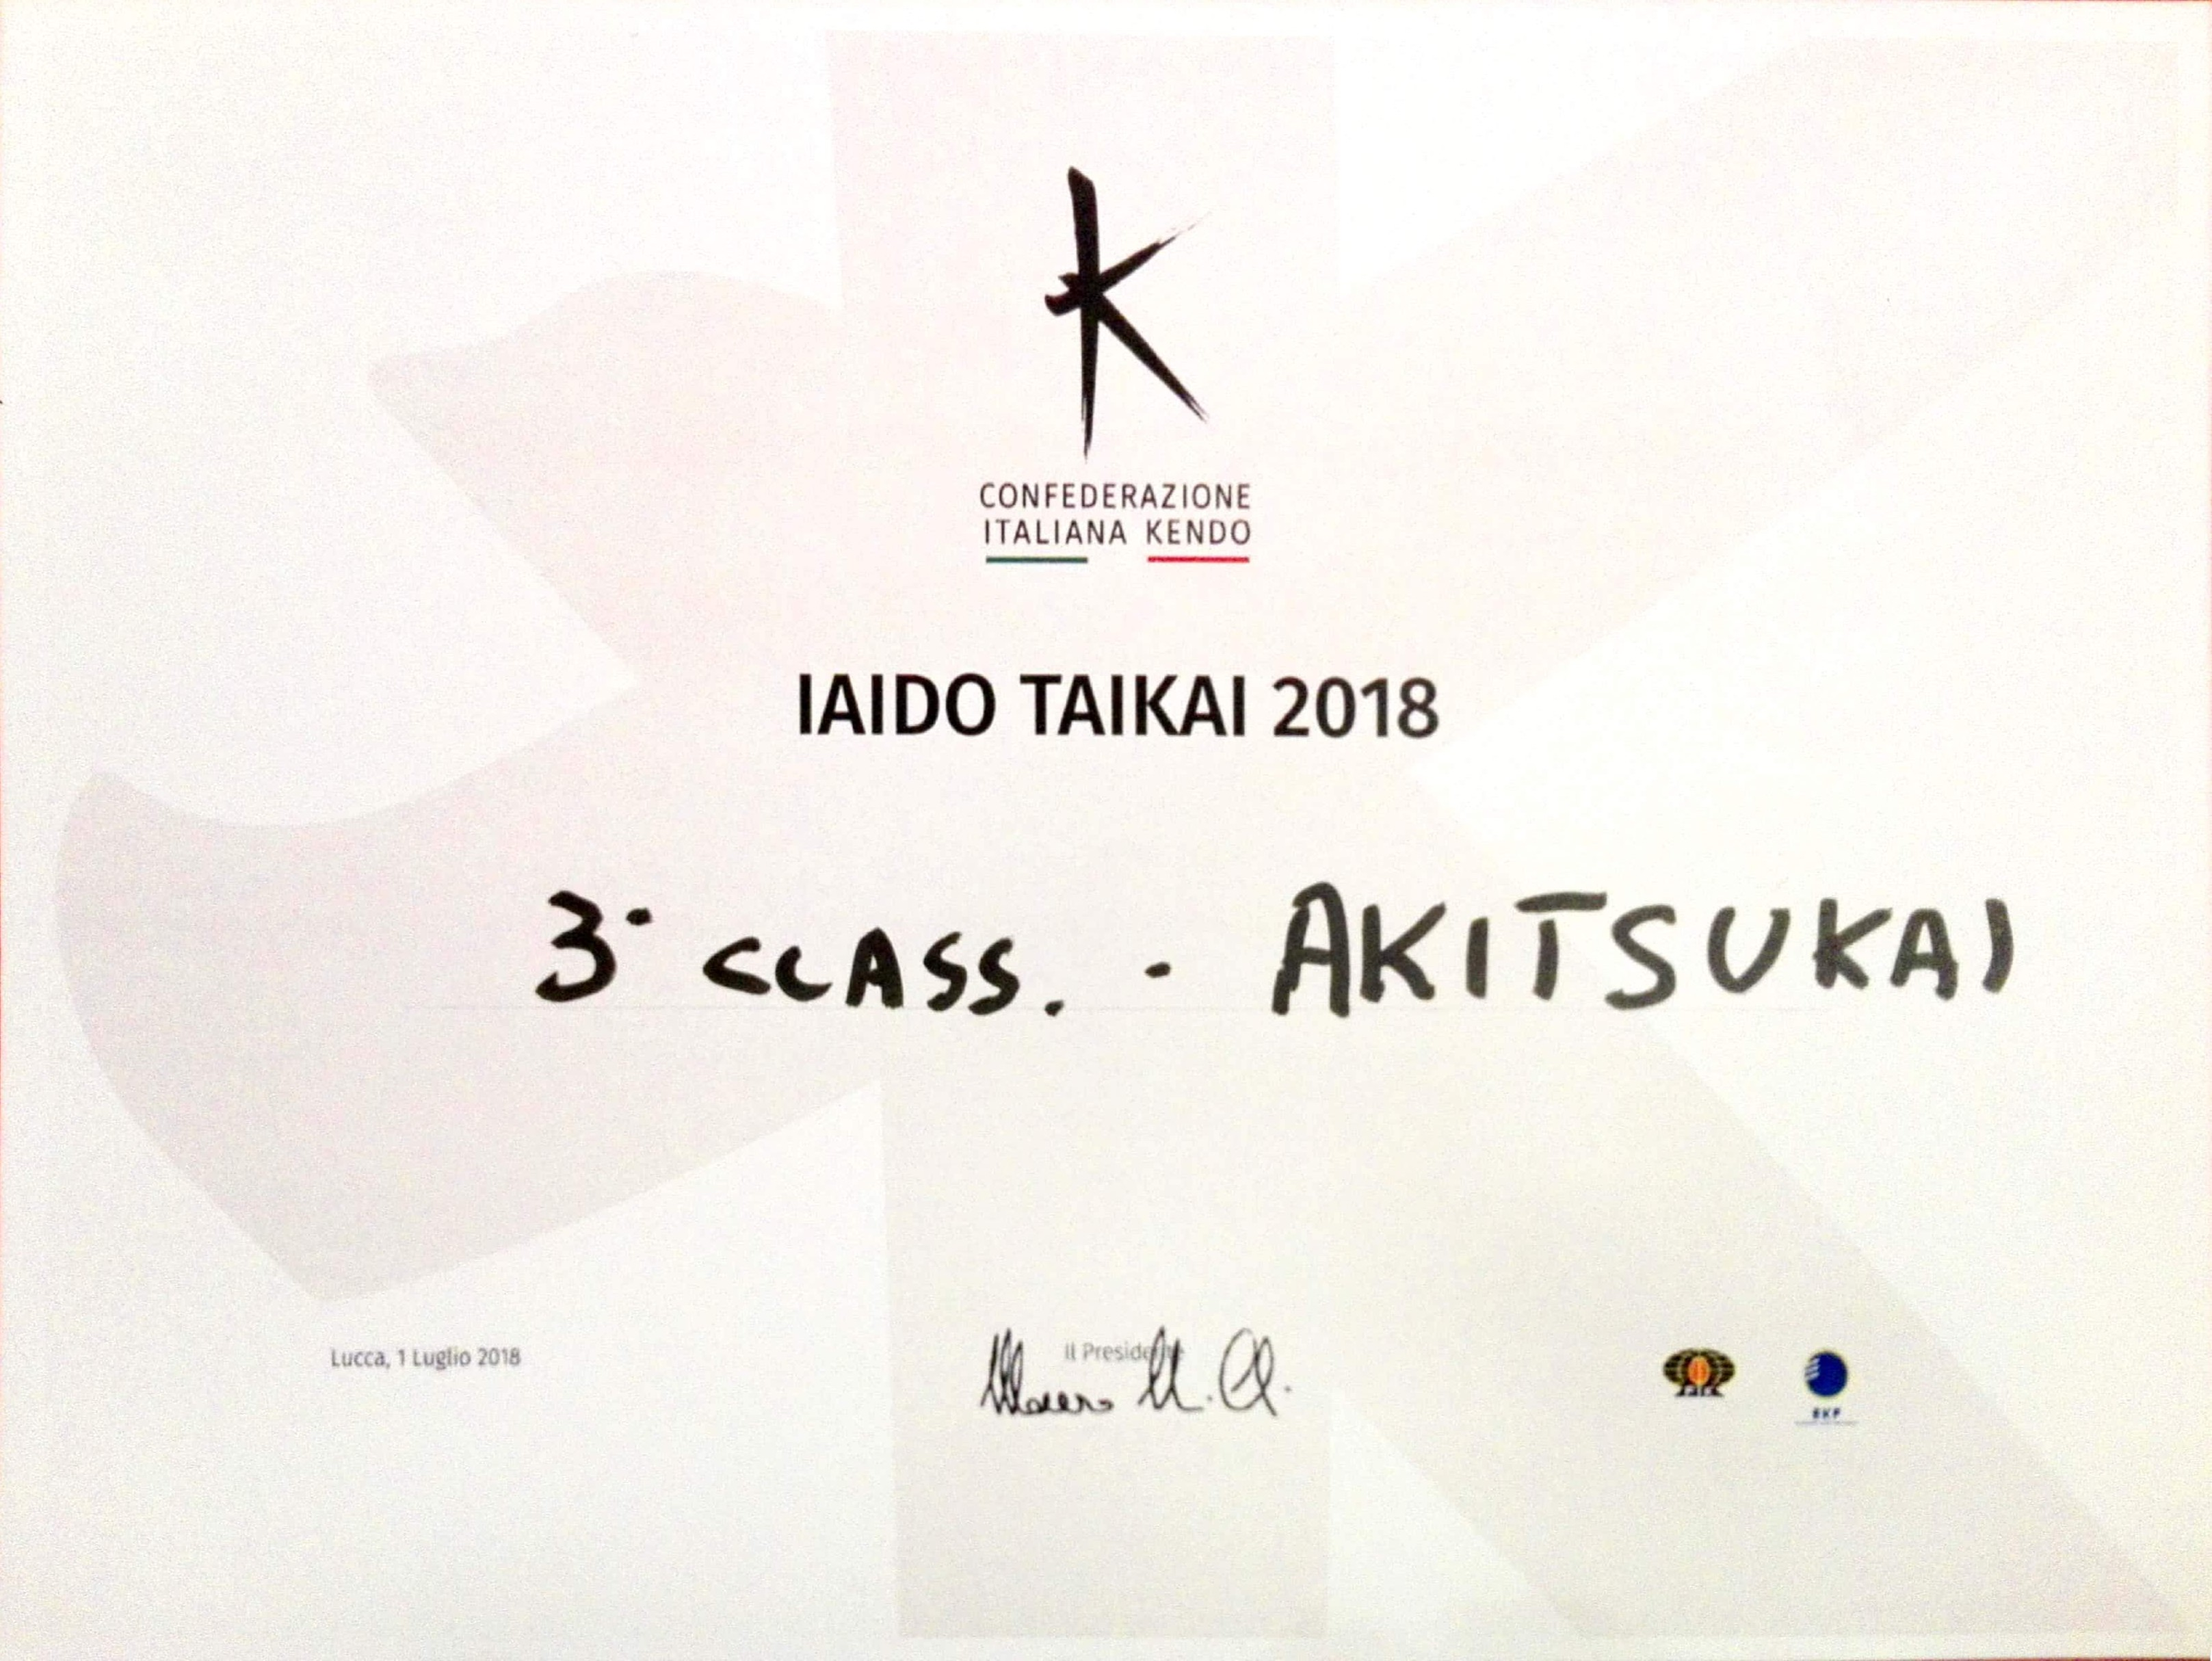 akitsukai 3rd classificata